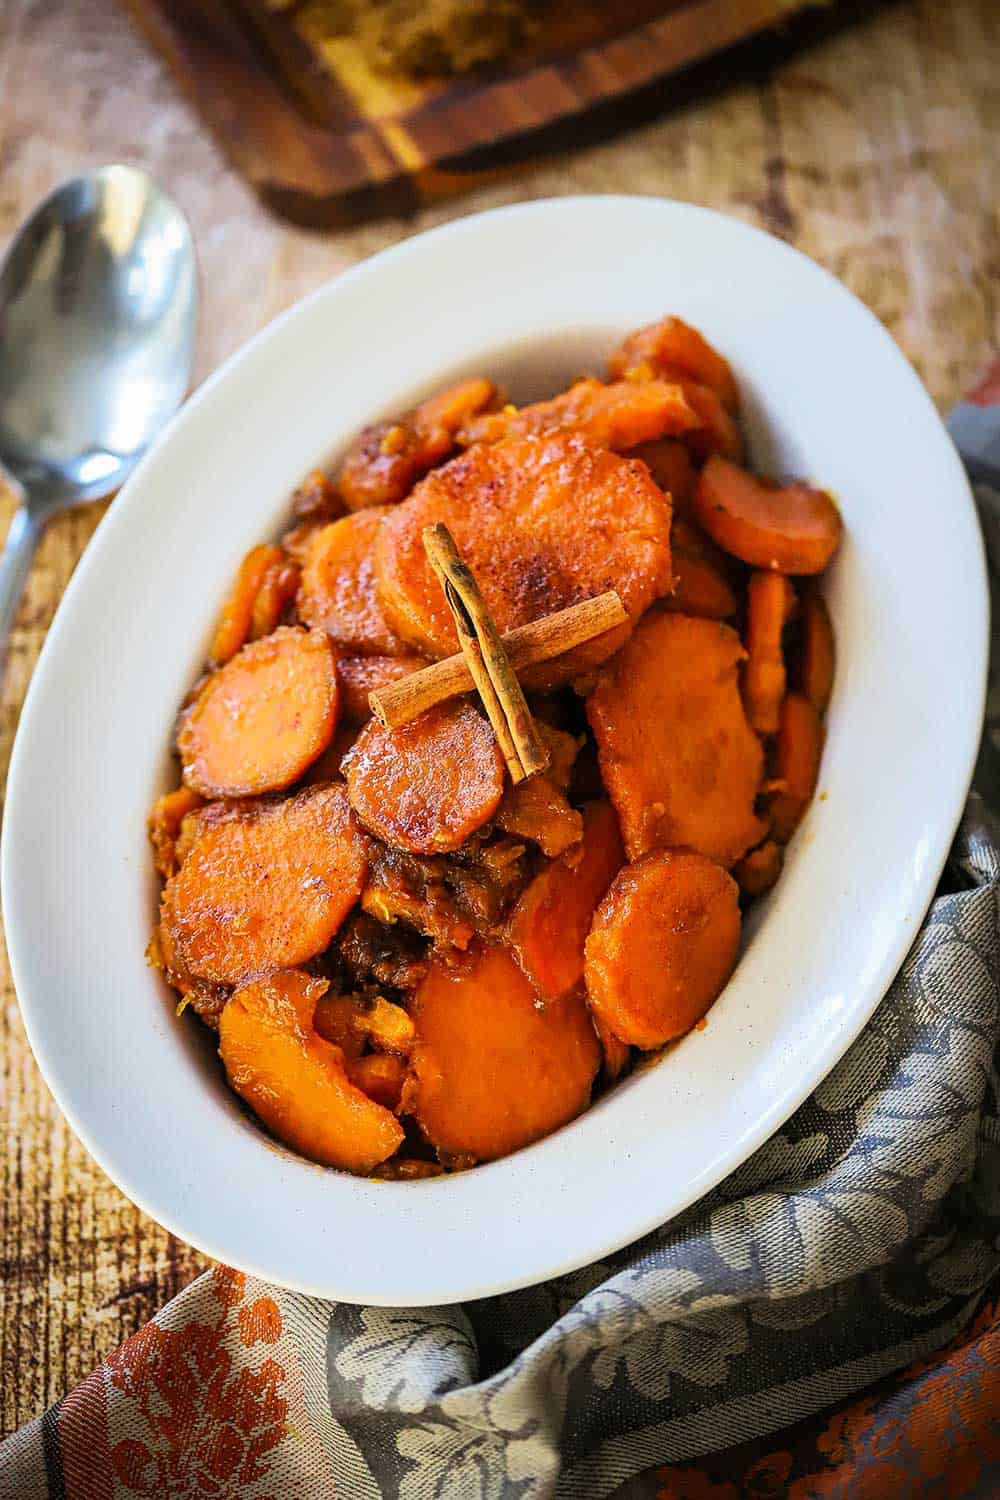 An oval serving dish filled with classic candied yams with two cinnamon sticks crossed on top.